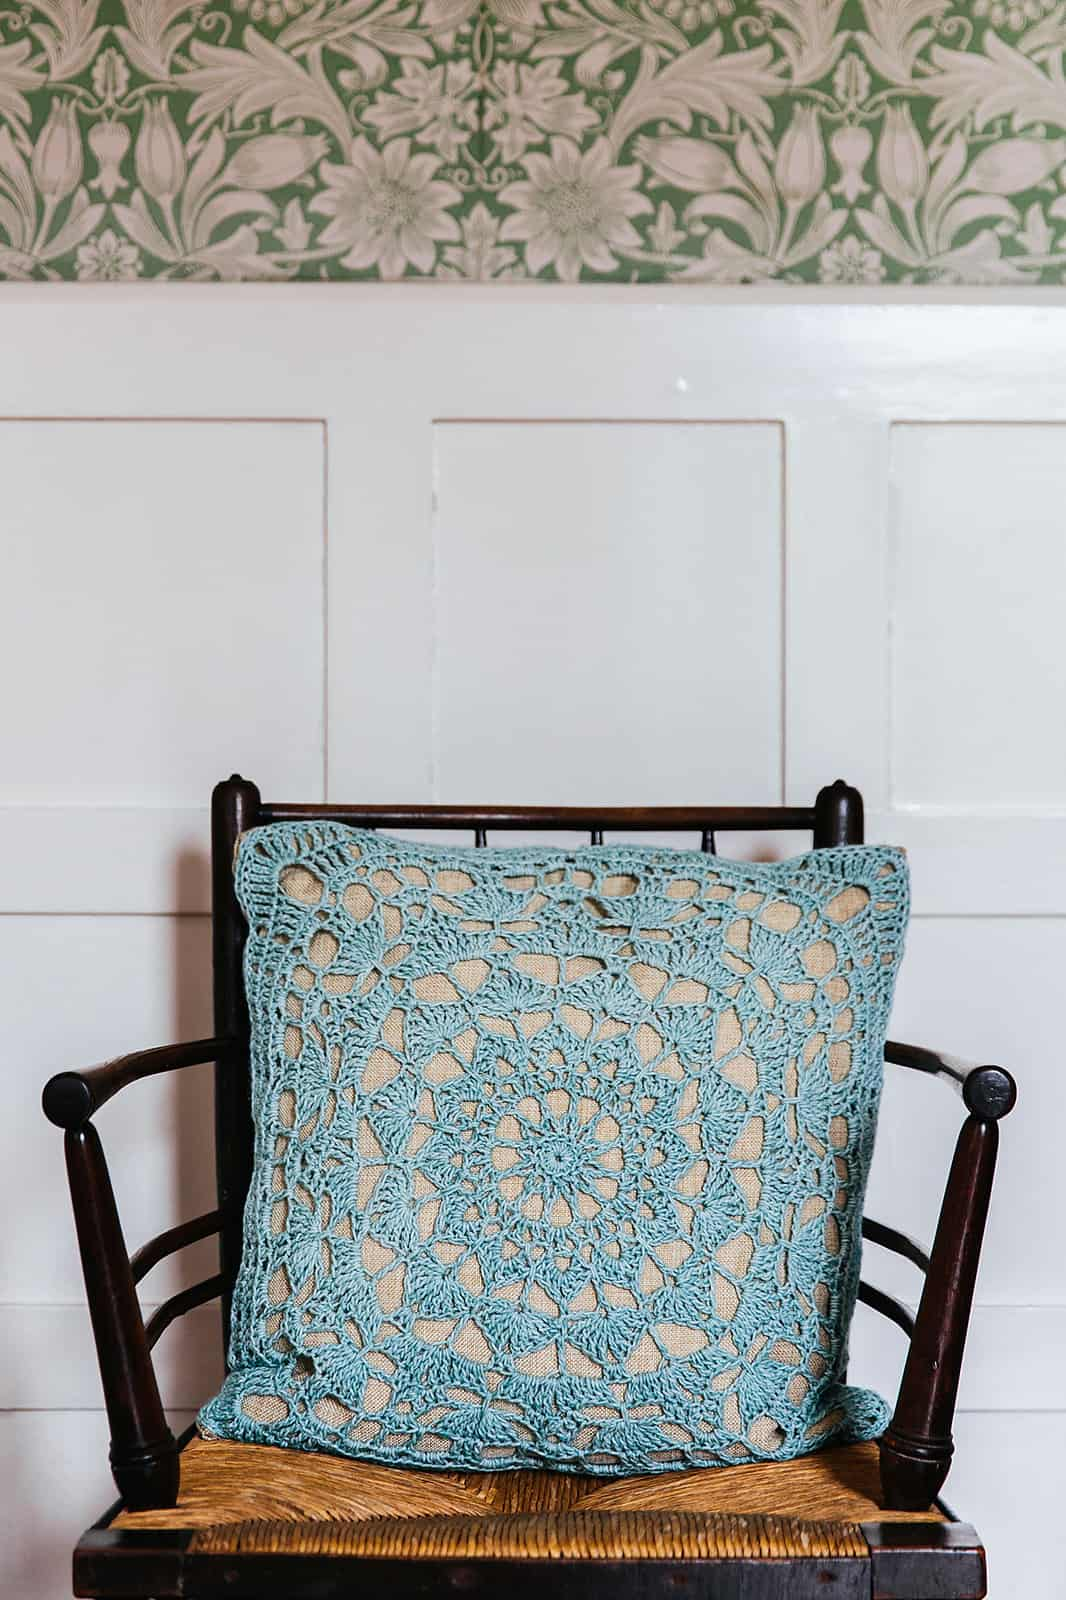 Beautiful lace crochet motif cushion on arts and crafts chair. Easy crochet home decor pattern.